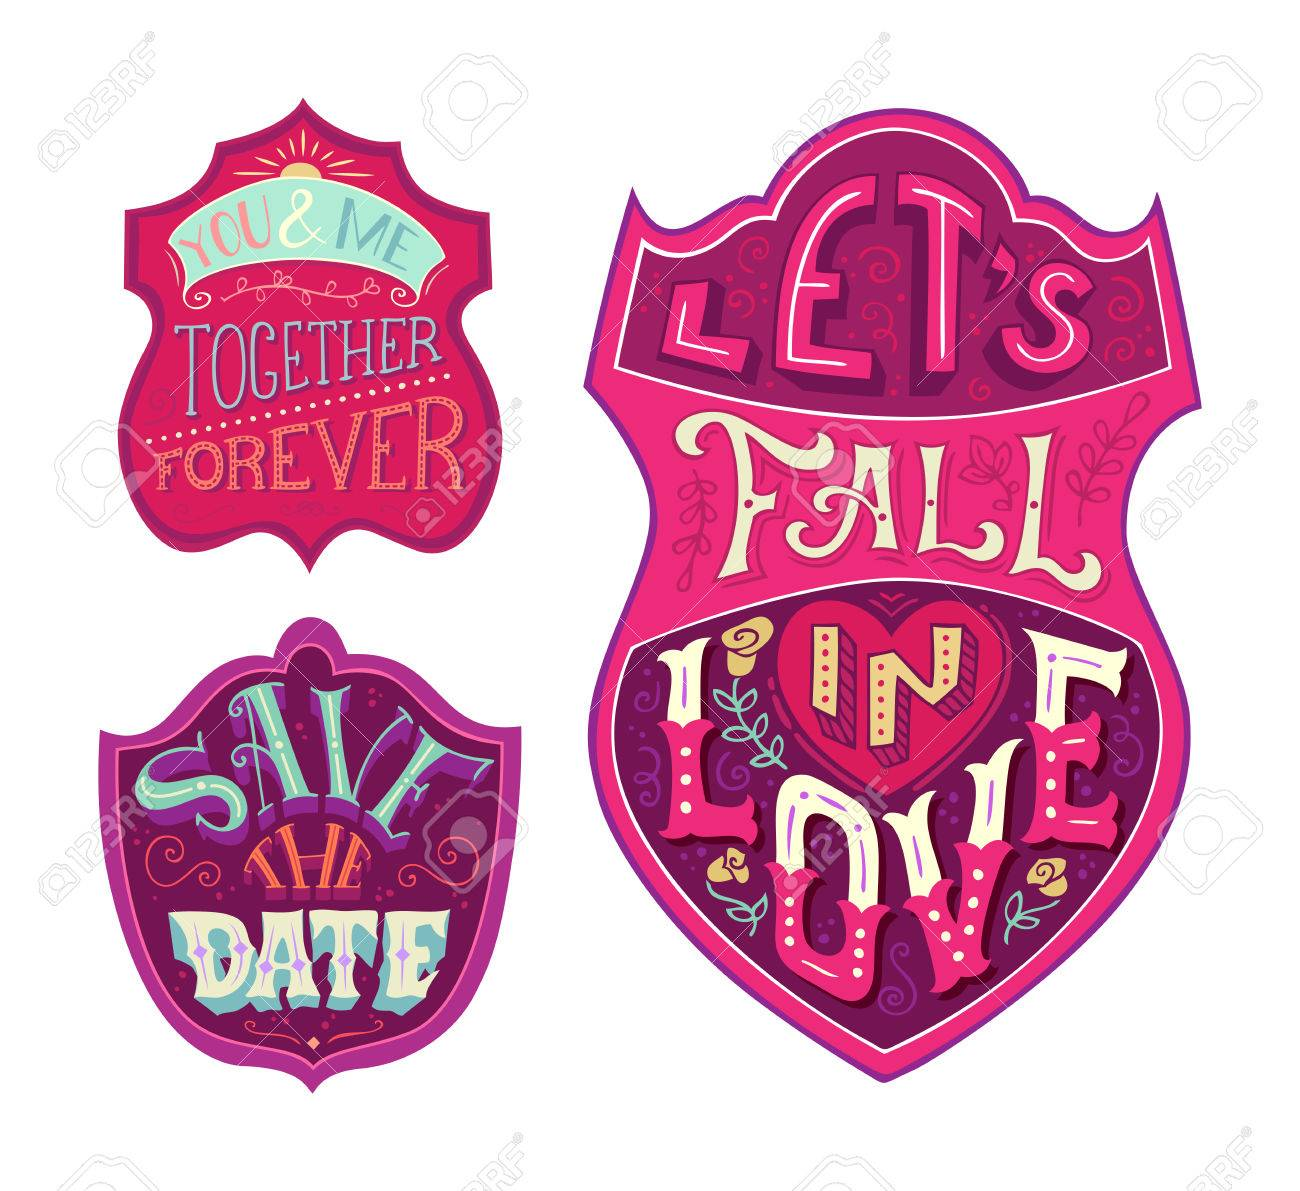 You And Me Together Forever Lets Fall In Love Save The Date